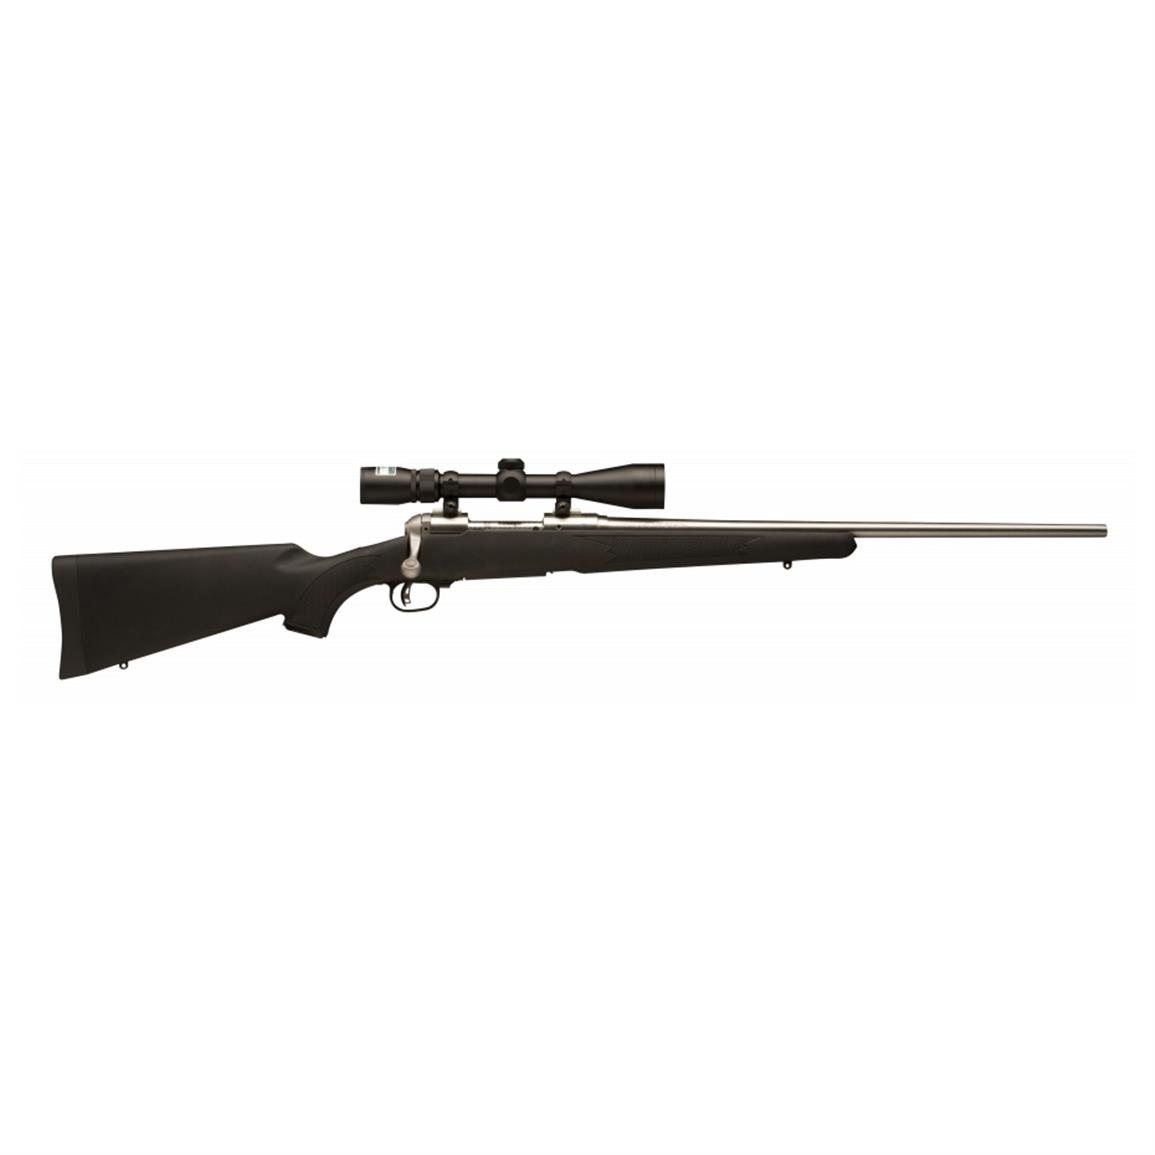 Savage 16 Trophy Hunter XP, Bolt Action, .338 Federal, Centerfire, 22452, 11356224521